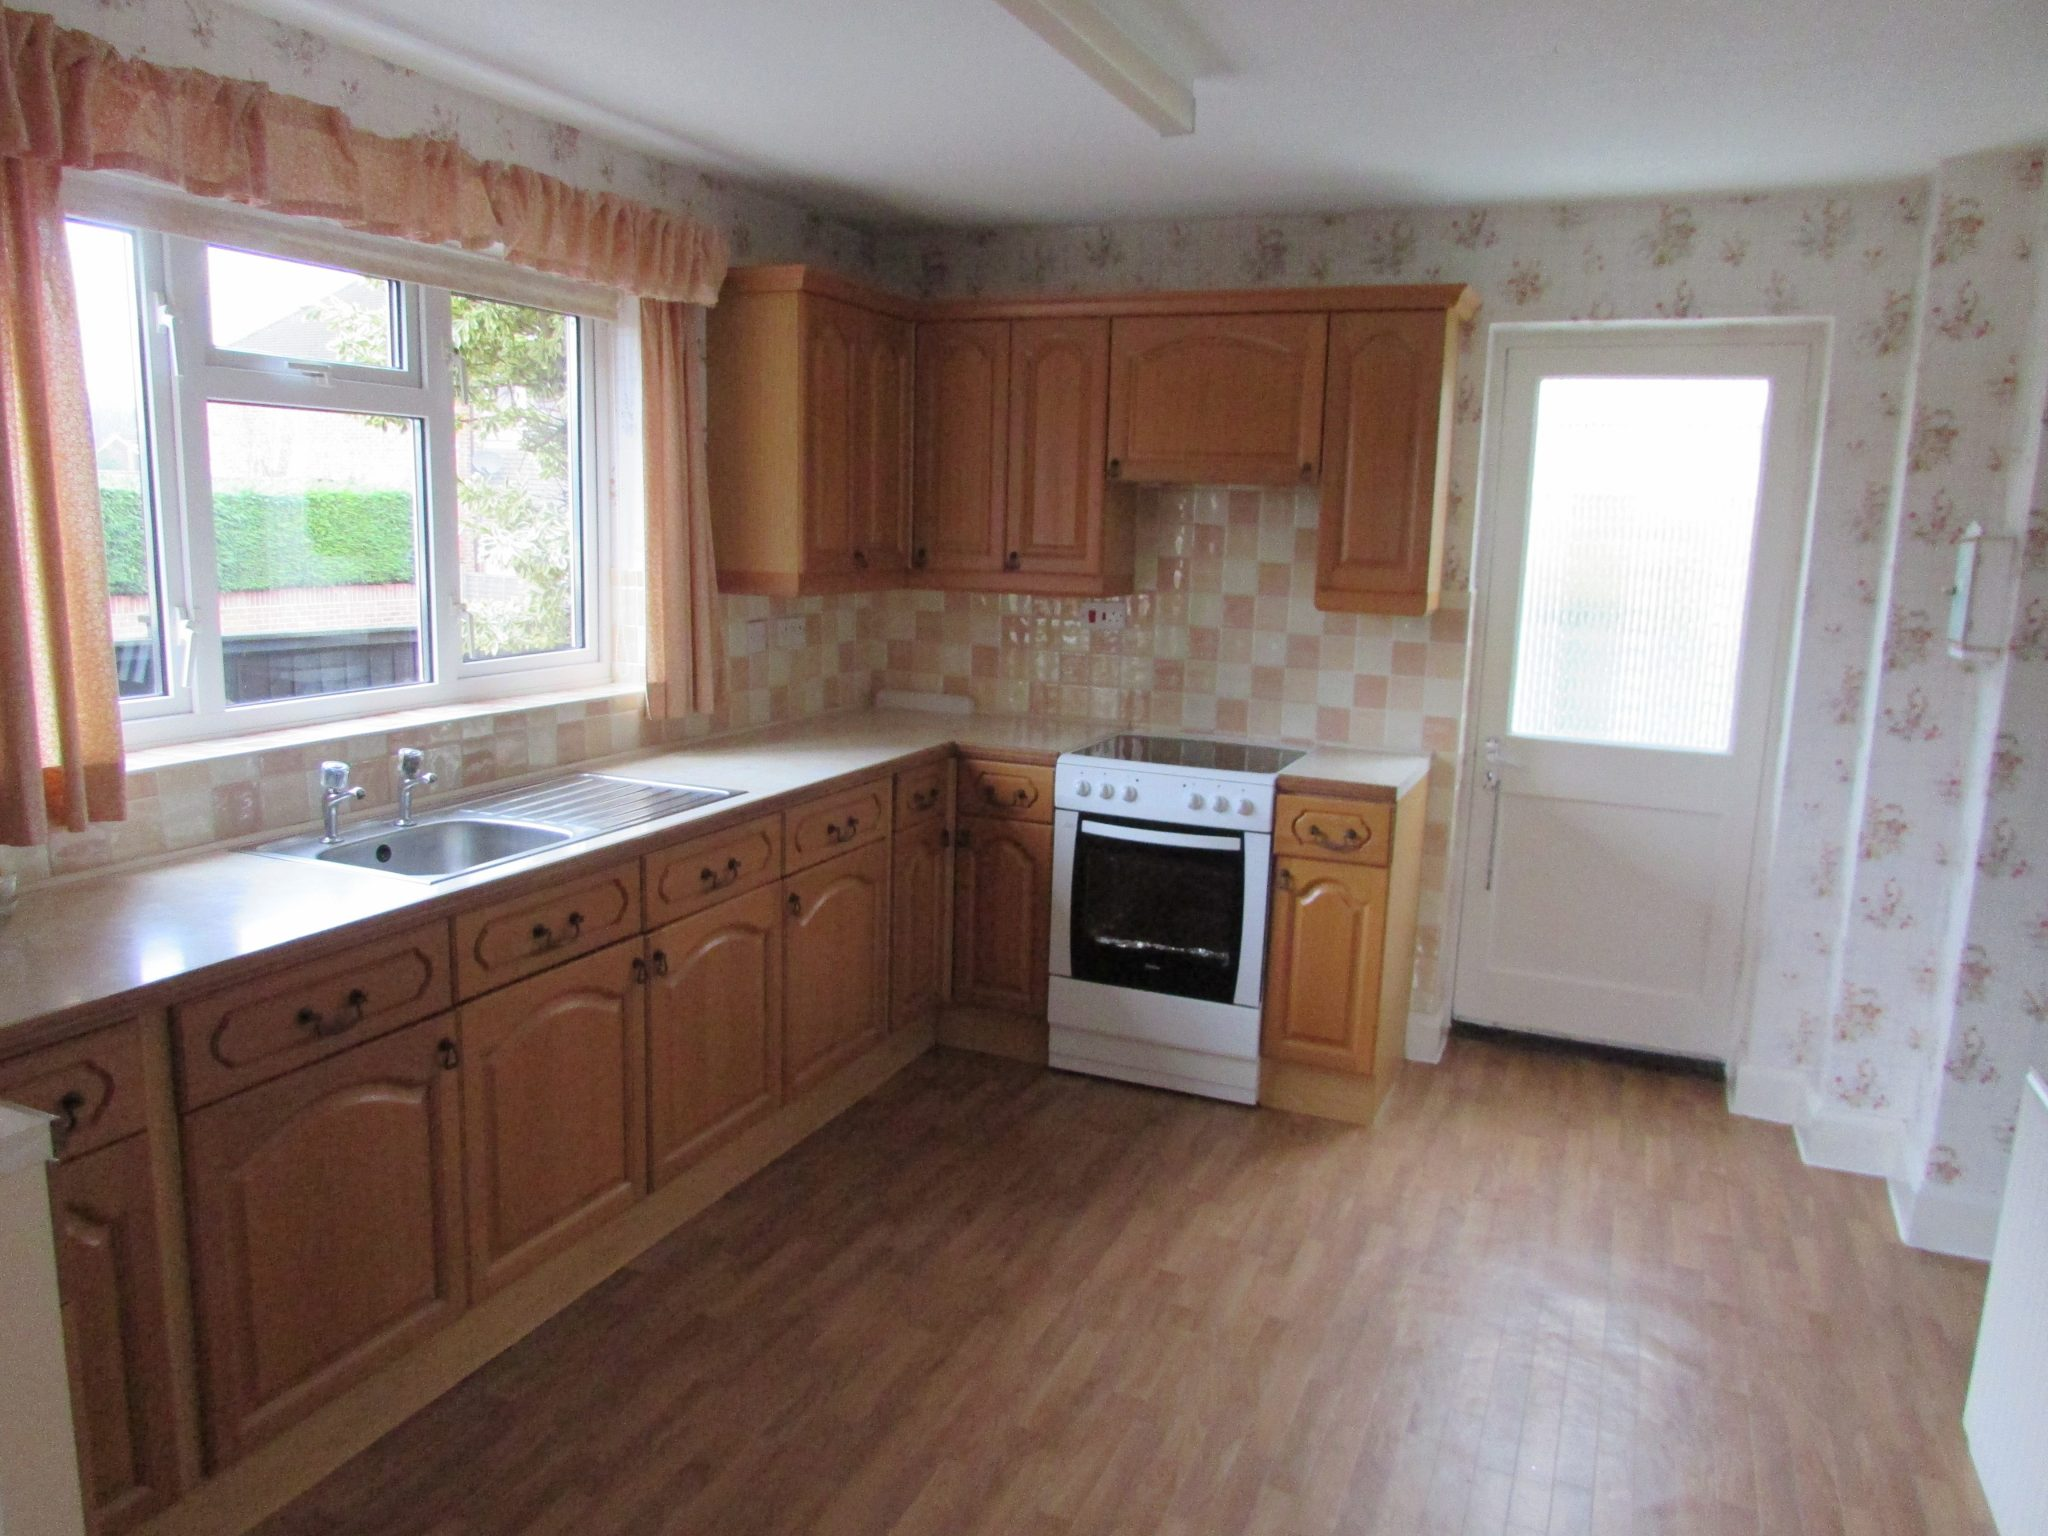 Property to rent, property to let, Warminster, Victoria Road, John Loftus Property Centre